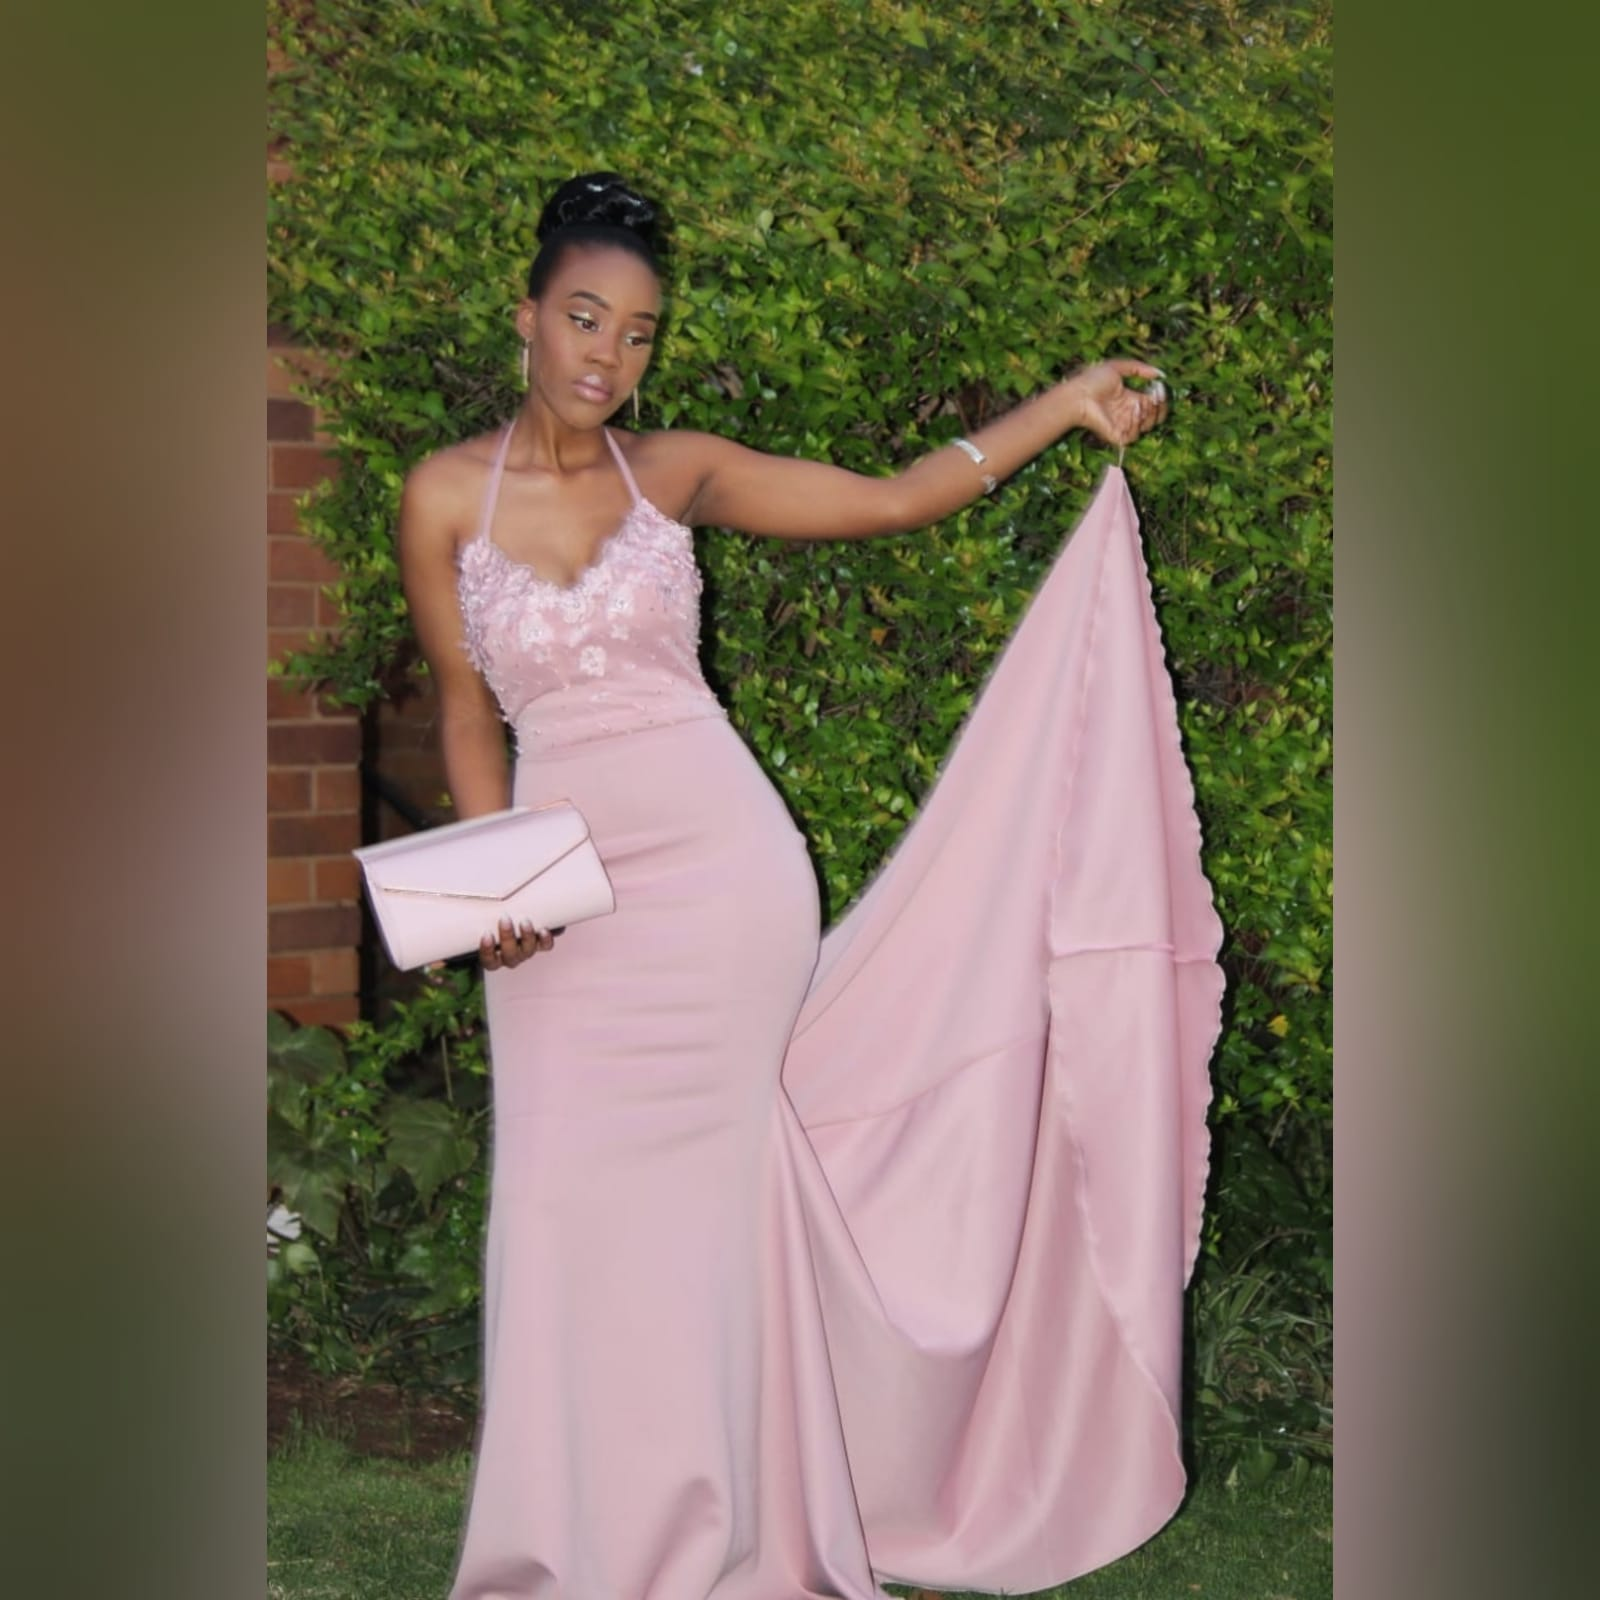 Pale pink soft mermaid matric dance dress 1 pale pink soft mermaid matric dance dress, bodice detailed with pearls and 3d lace, with a train and detachable neck strap.